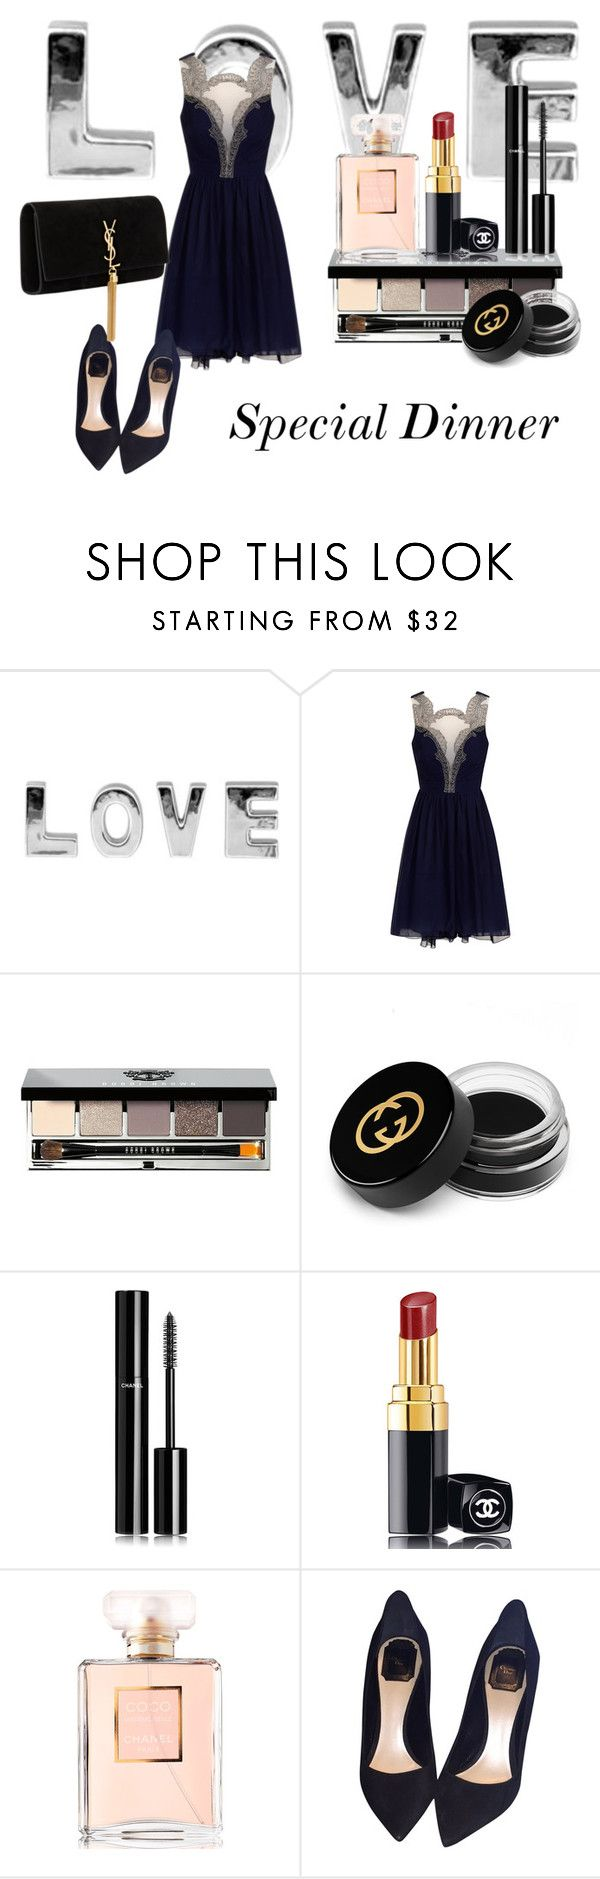 """Special Dinner Set"" by helenl-29 on Polyvore featuring Bobbi Brown Cosmetics, Gucci, Chanel, Christian Dior, Yves Saint Laurent, love, Blue, special and Elegance"